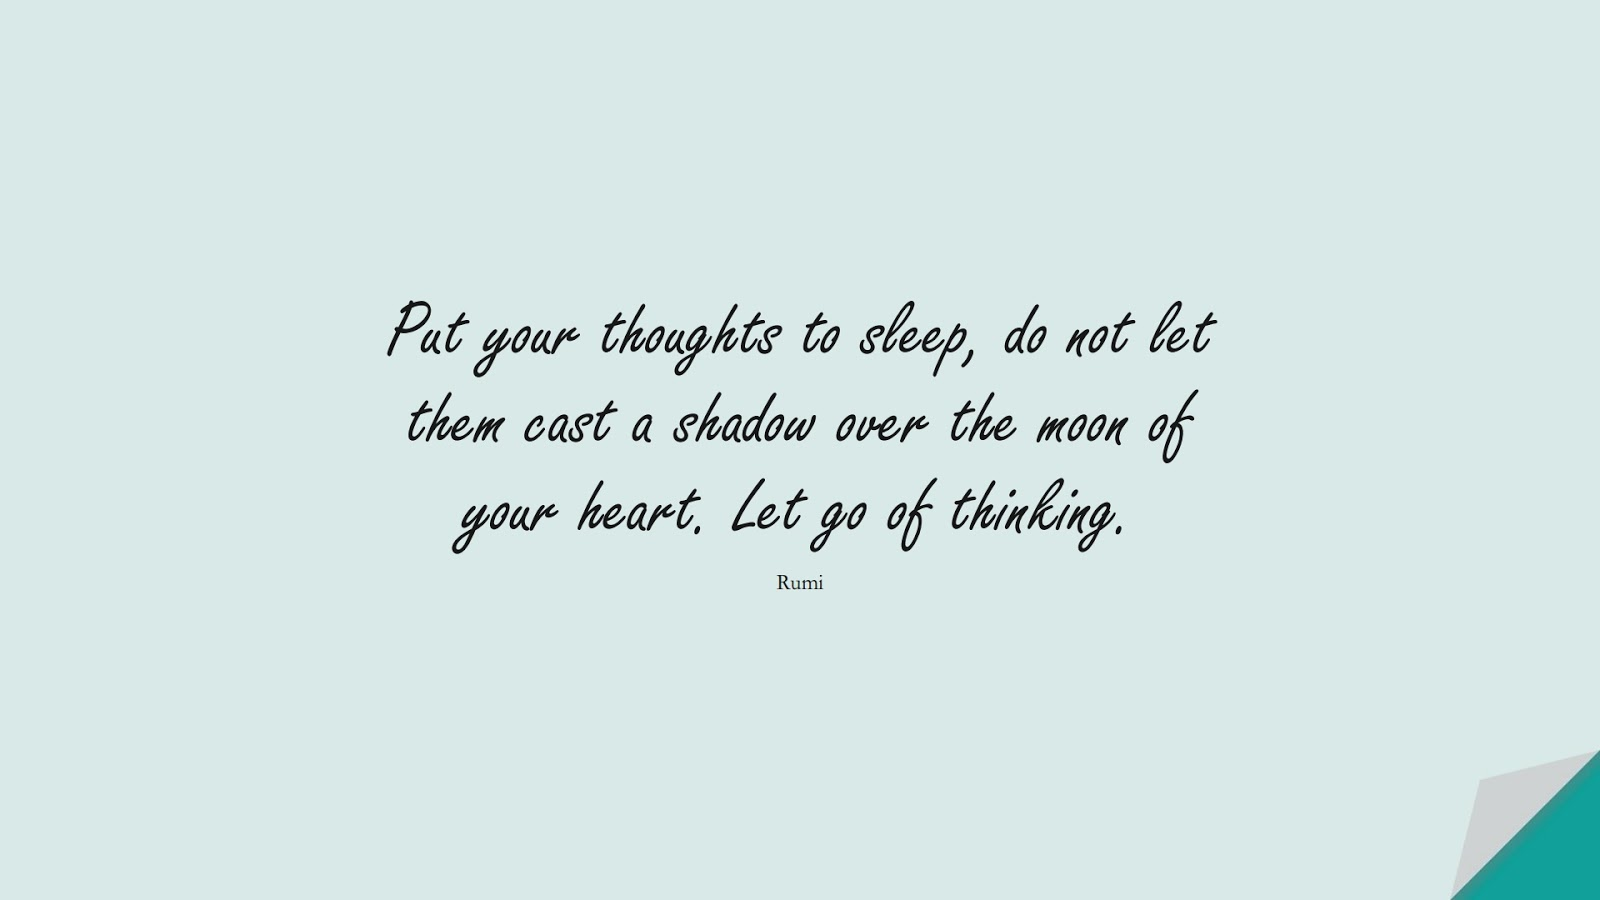 Put your thoughts to sleep, do not let them cast a shadow over the moon of your heart. Let go of thinking. (Rumi);  #RumiQuotes